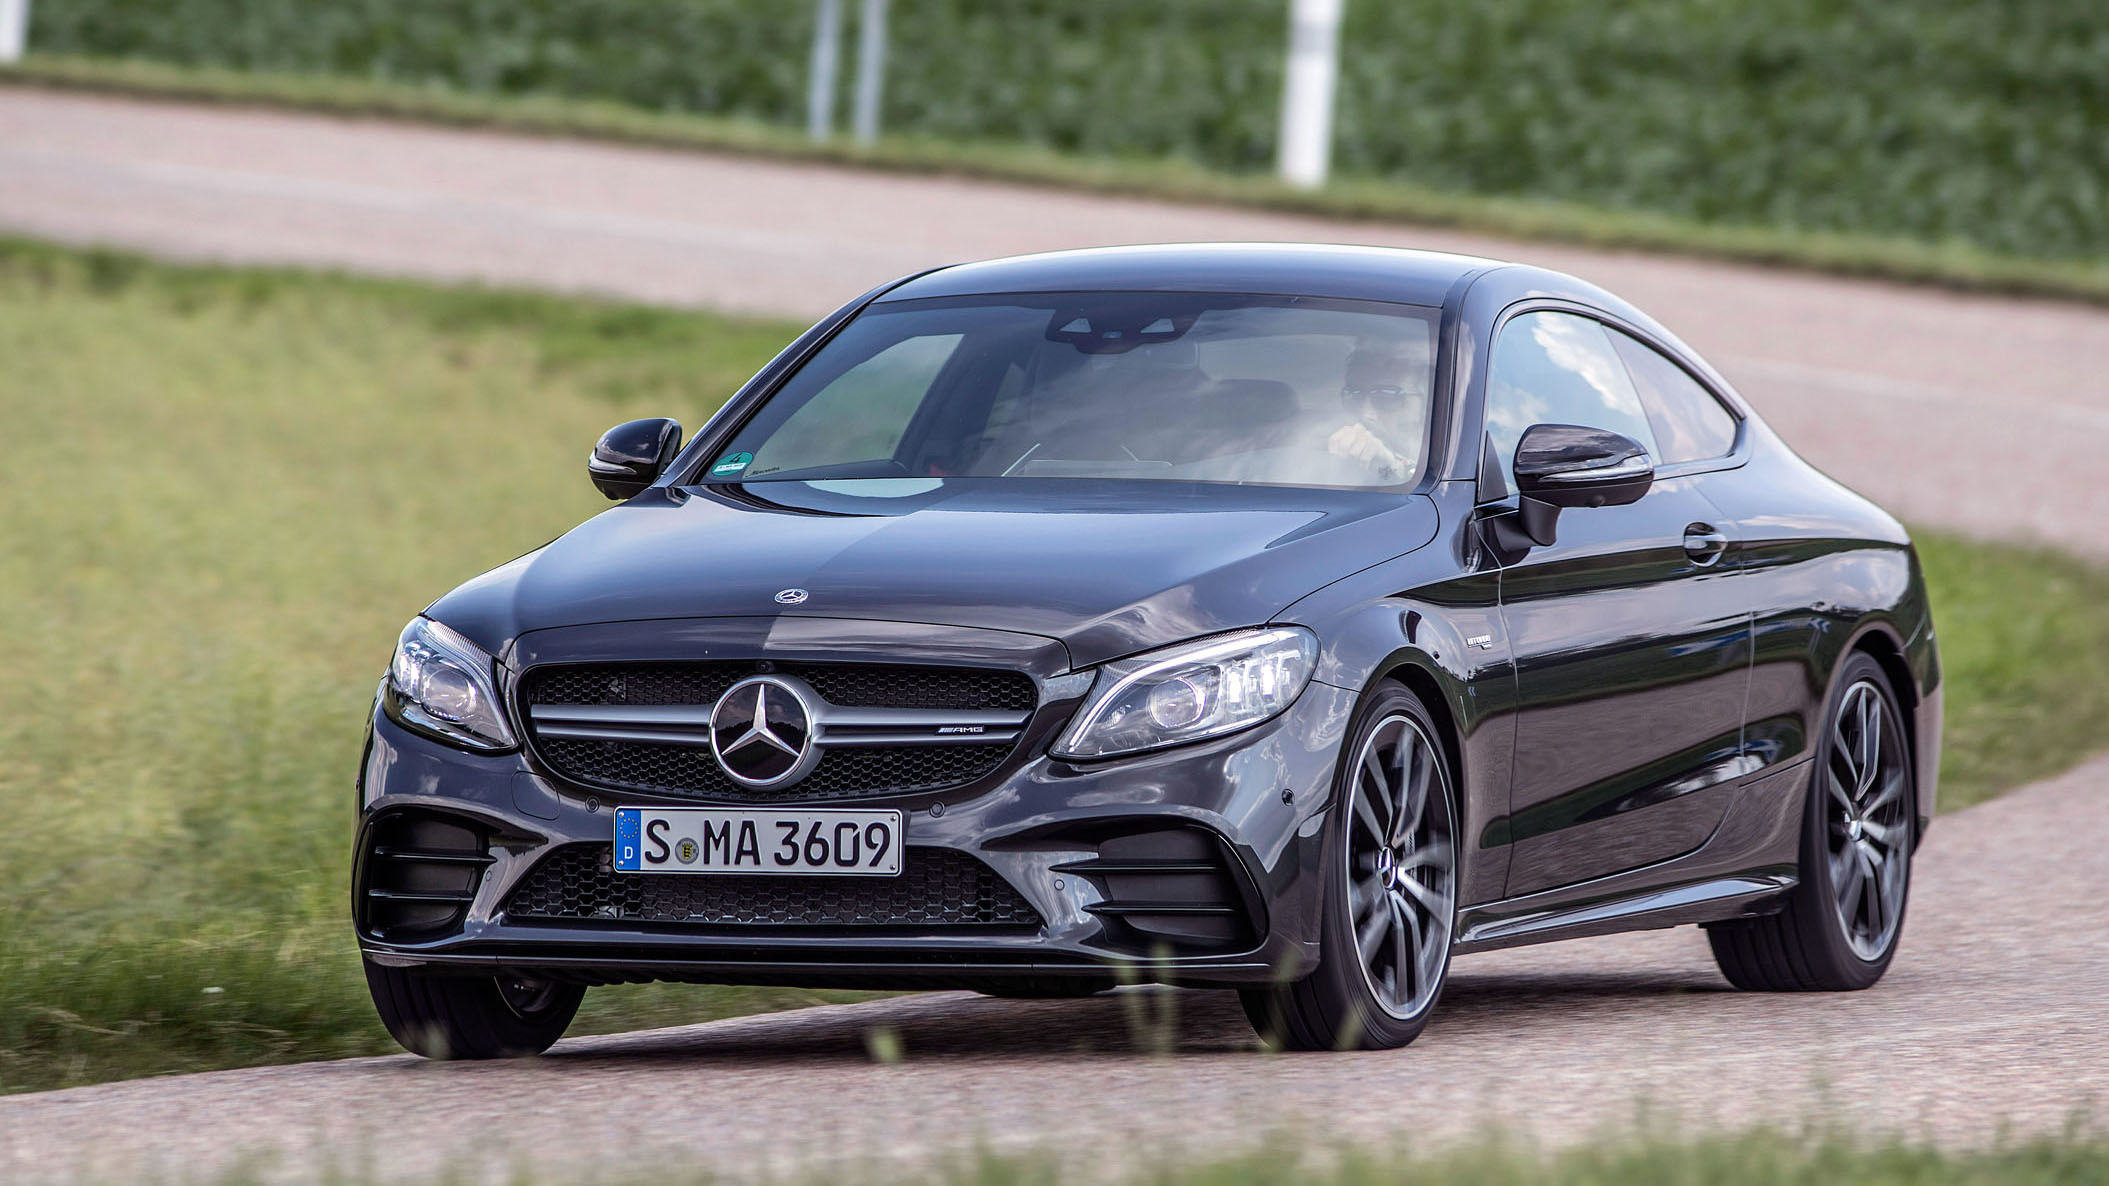 Mercedes Benz Of North Haven Home Facebook >> 2019 Mercedes Benz C 300 And Amg C 43 Road Test Review Autoblog